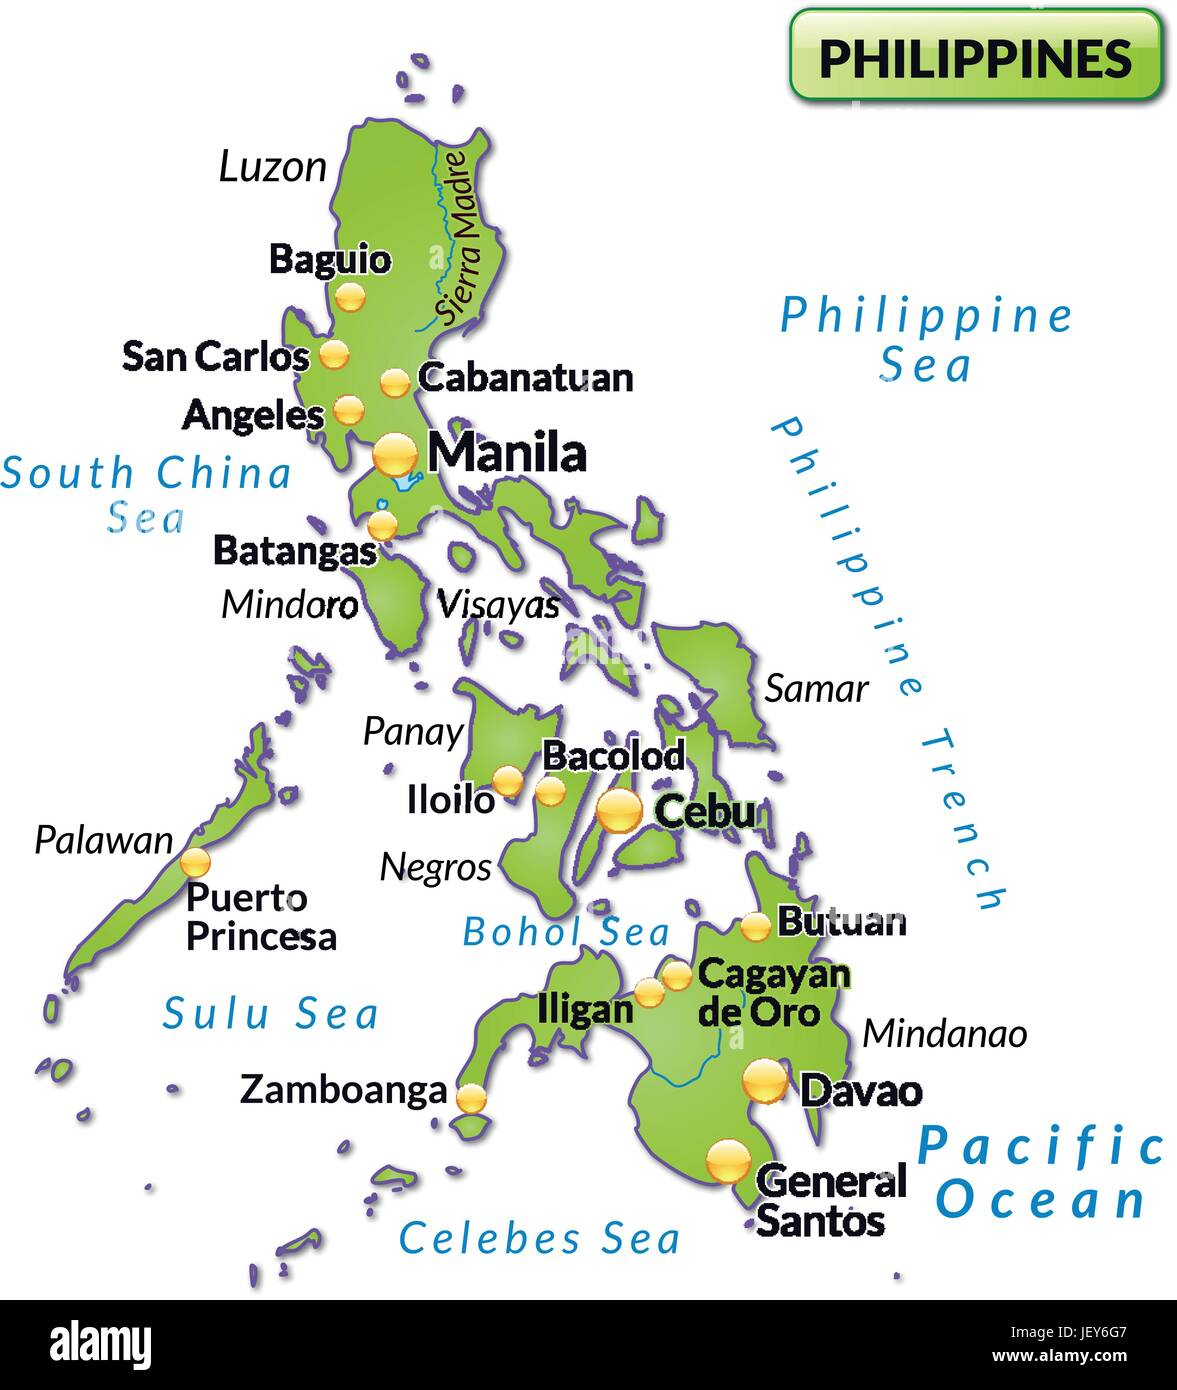 island map of philippines as an overview map in green Stock ...